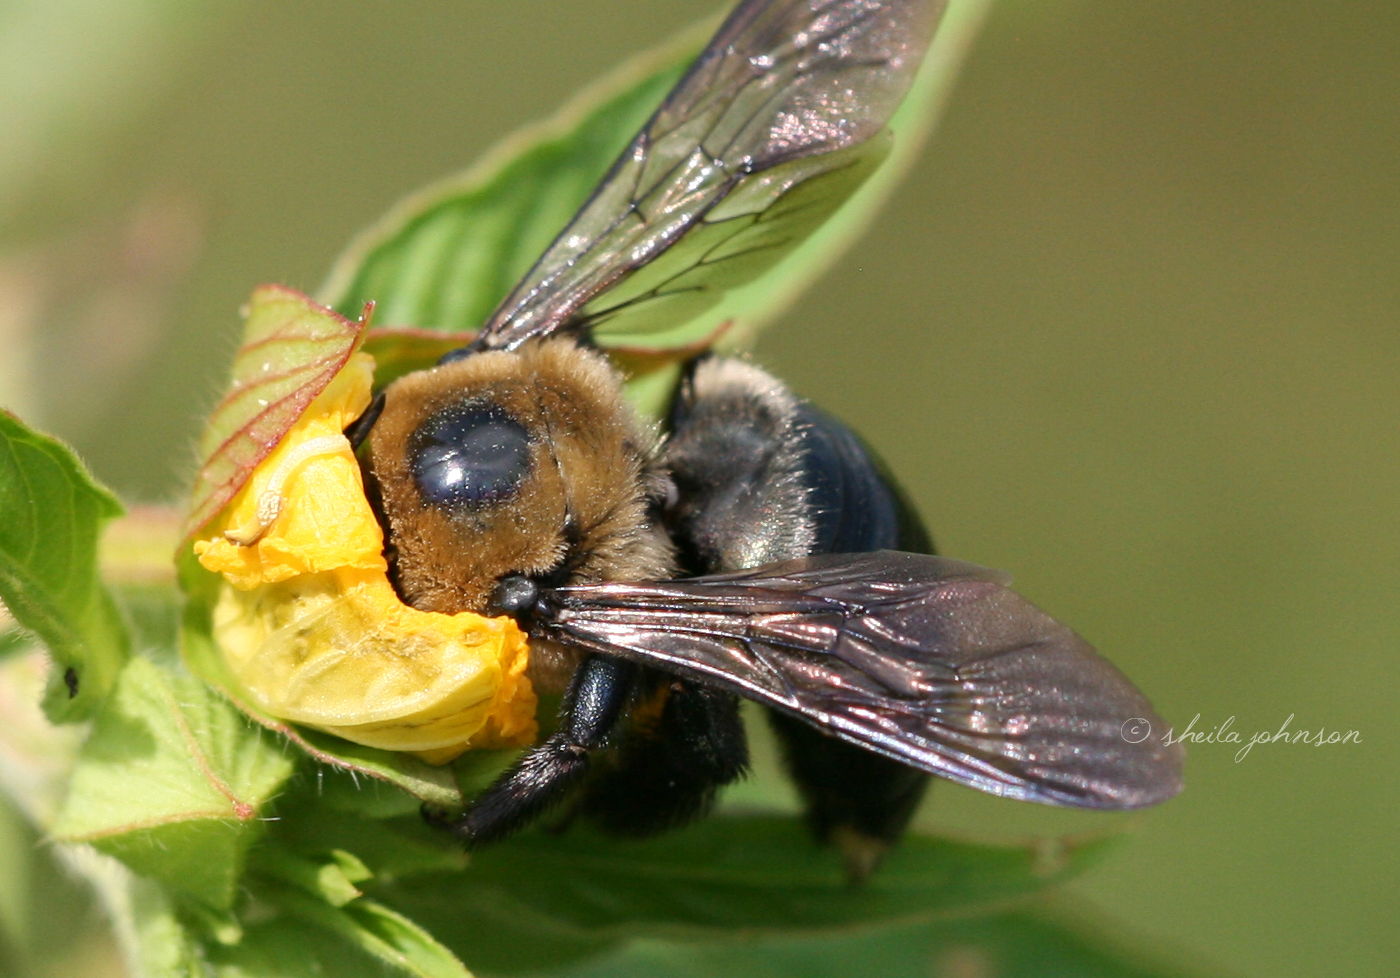 With His Head Buried Deeply Into A Yellow Wildflower, This Bumble Bee Takes His Work Seriously.